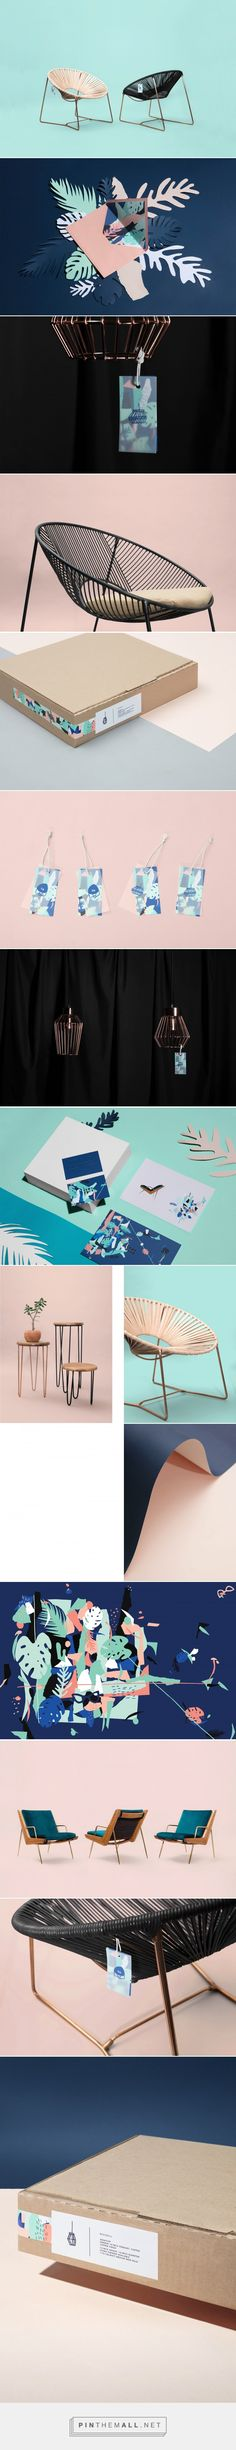 LeónLeón Furniture and Home Interior Branding by Futura | Fivestar Branding Agency – Design and Branding Agency & Curated Inspiration Gallery